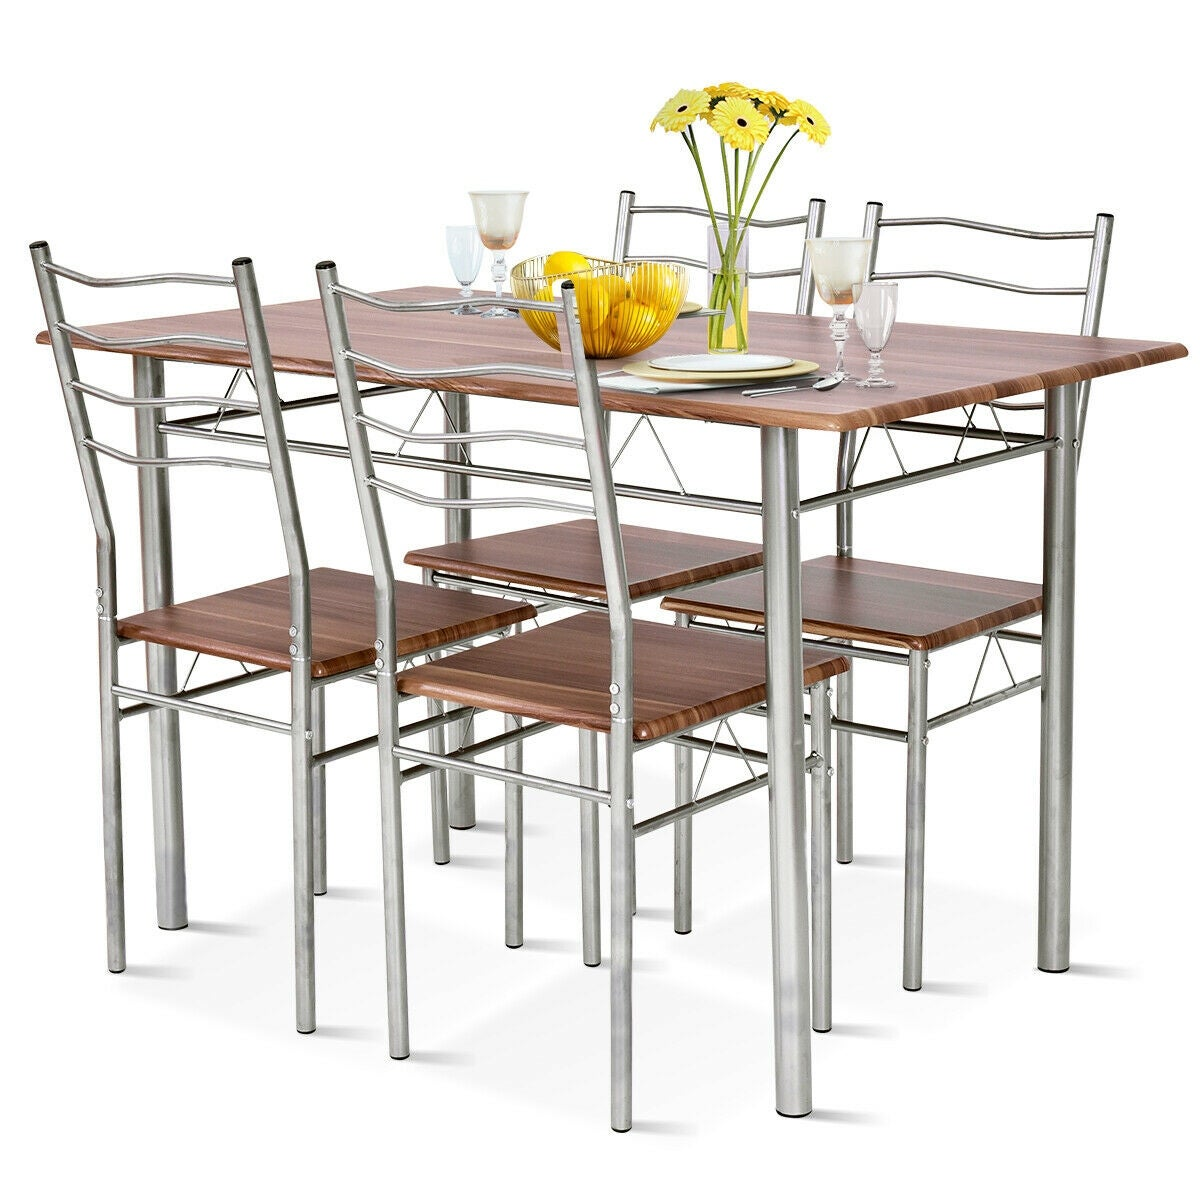 Costway 5 Piece Dining Table Set Wood Metal Kitchen Breakfast Furniture w/4  Chair Walnut - as pic